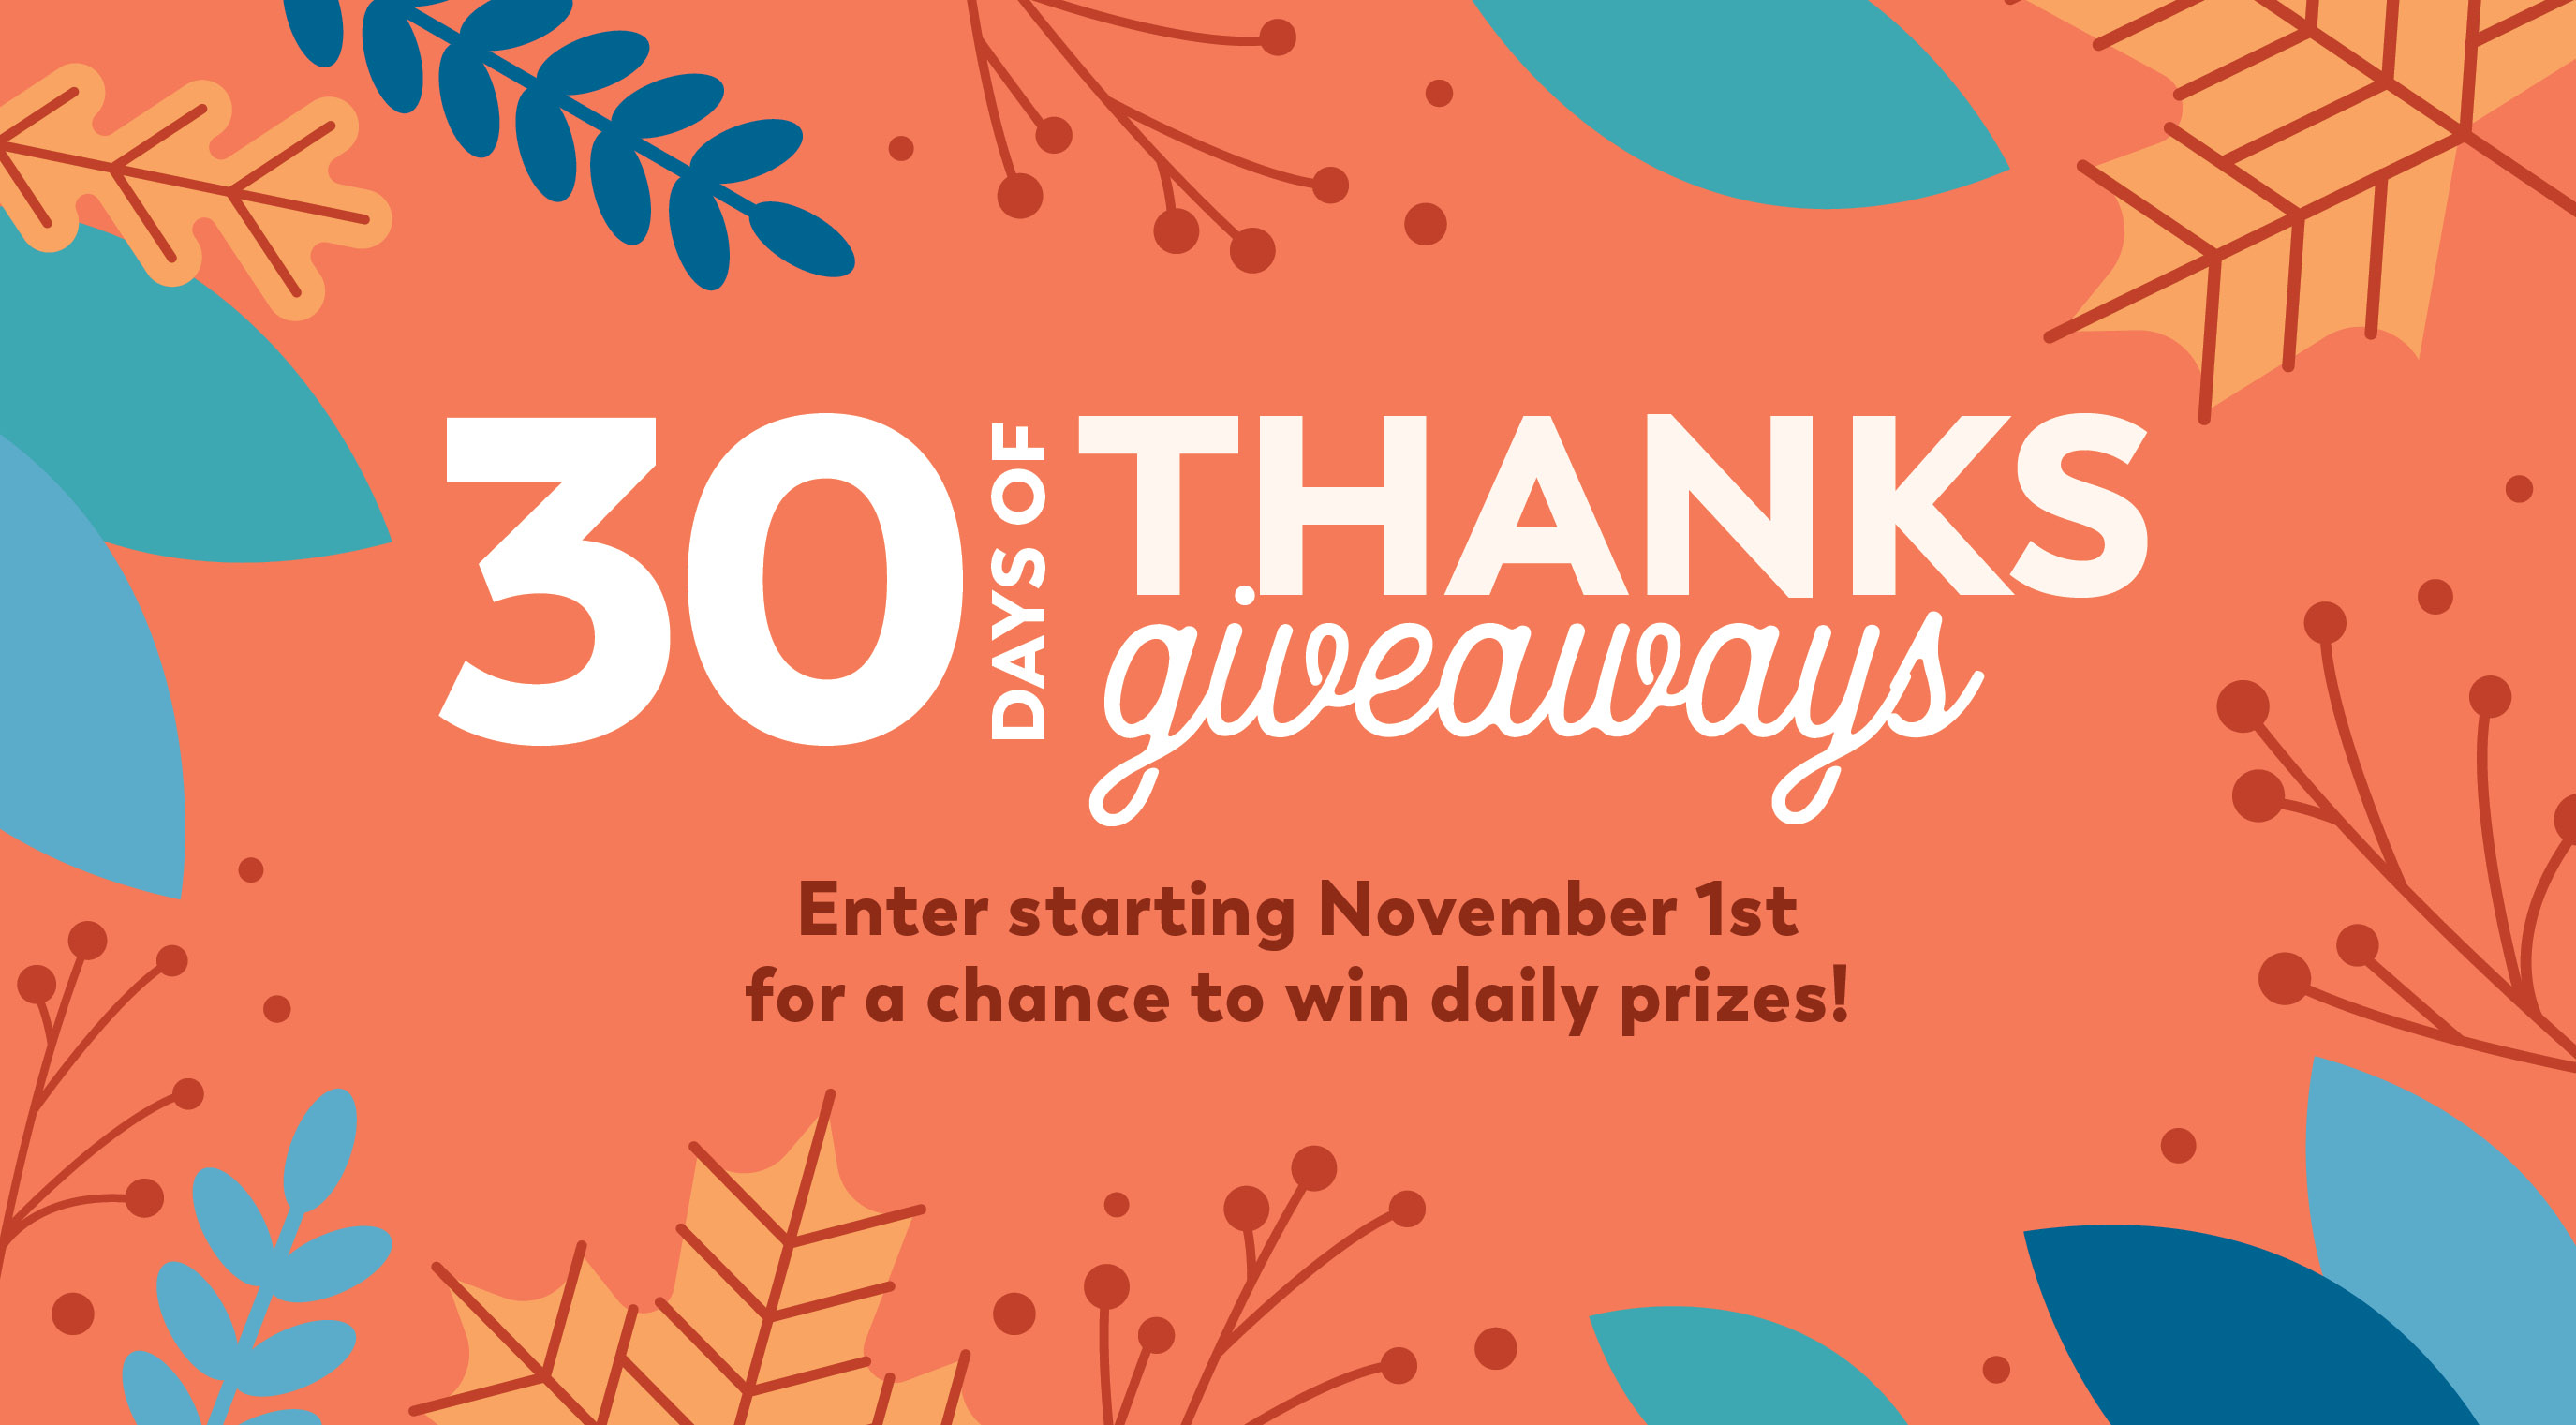 DAILY WINNERS! Enter the HGTV Thanksgiveaway to win daily prizes.Make the most of autumn by entering to win unbe-leaf-able daily prizes this November. Each day you enter, you increase the chances of winning the grand prize, a $500 in cash!